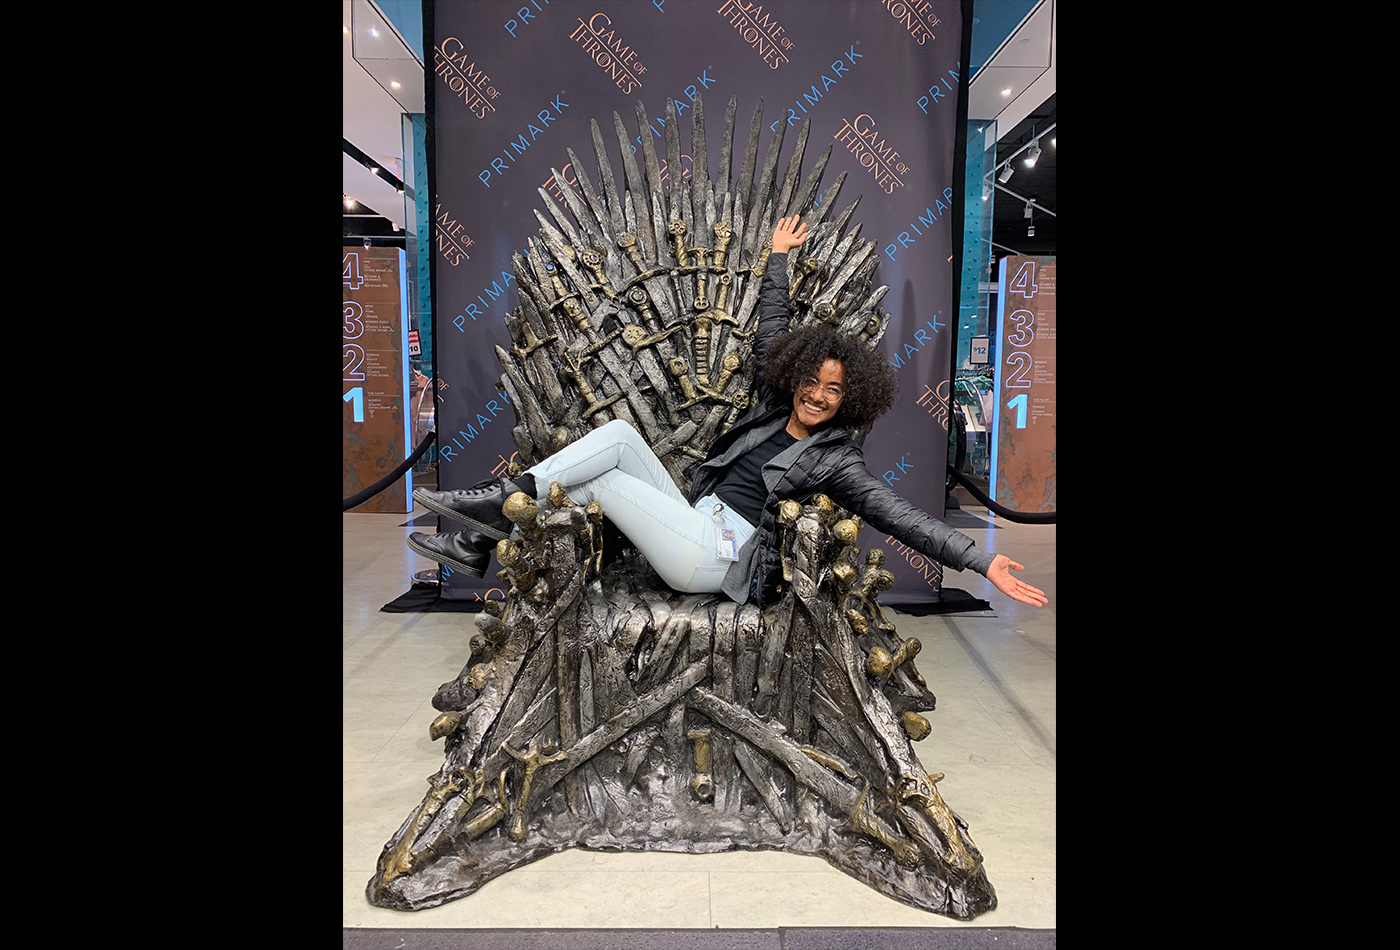 A female graduate student sits on a replica of the Iron Throne made of swords from Game of Thrones.